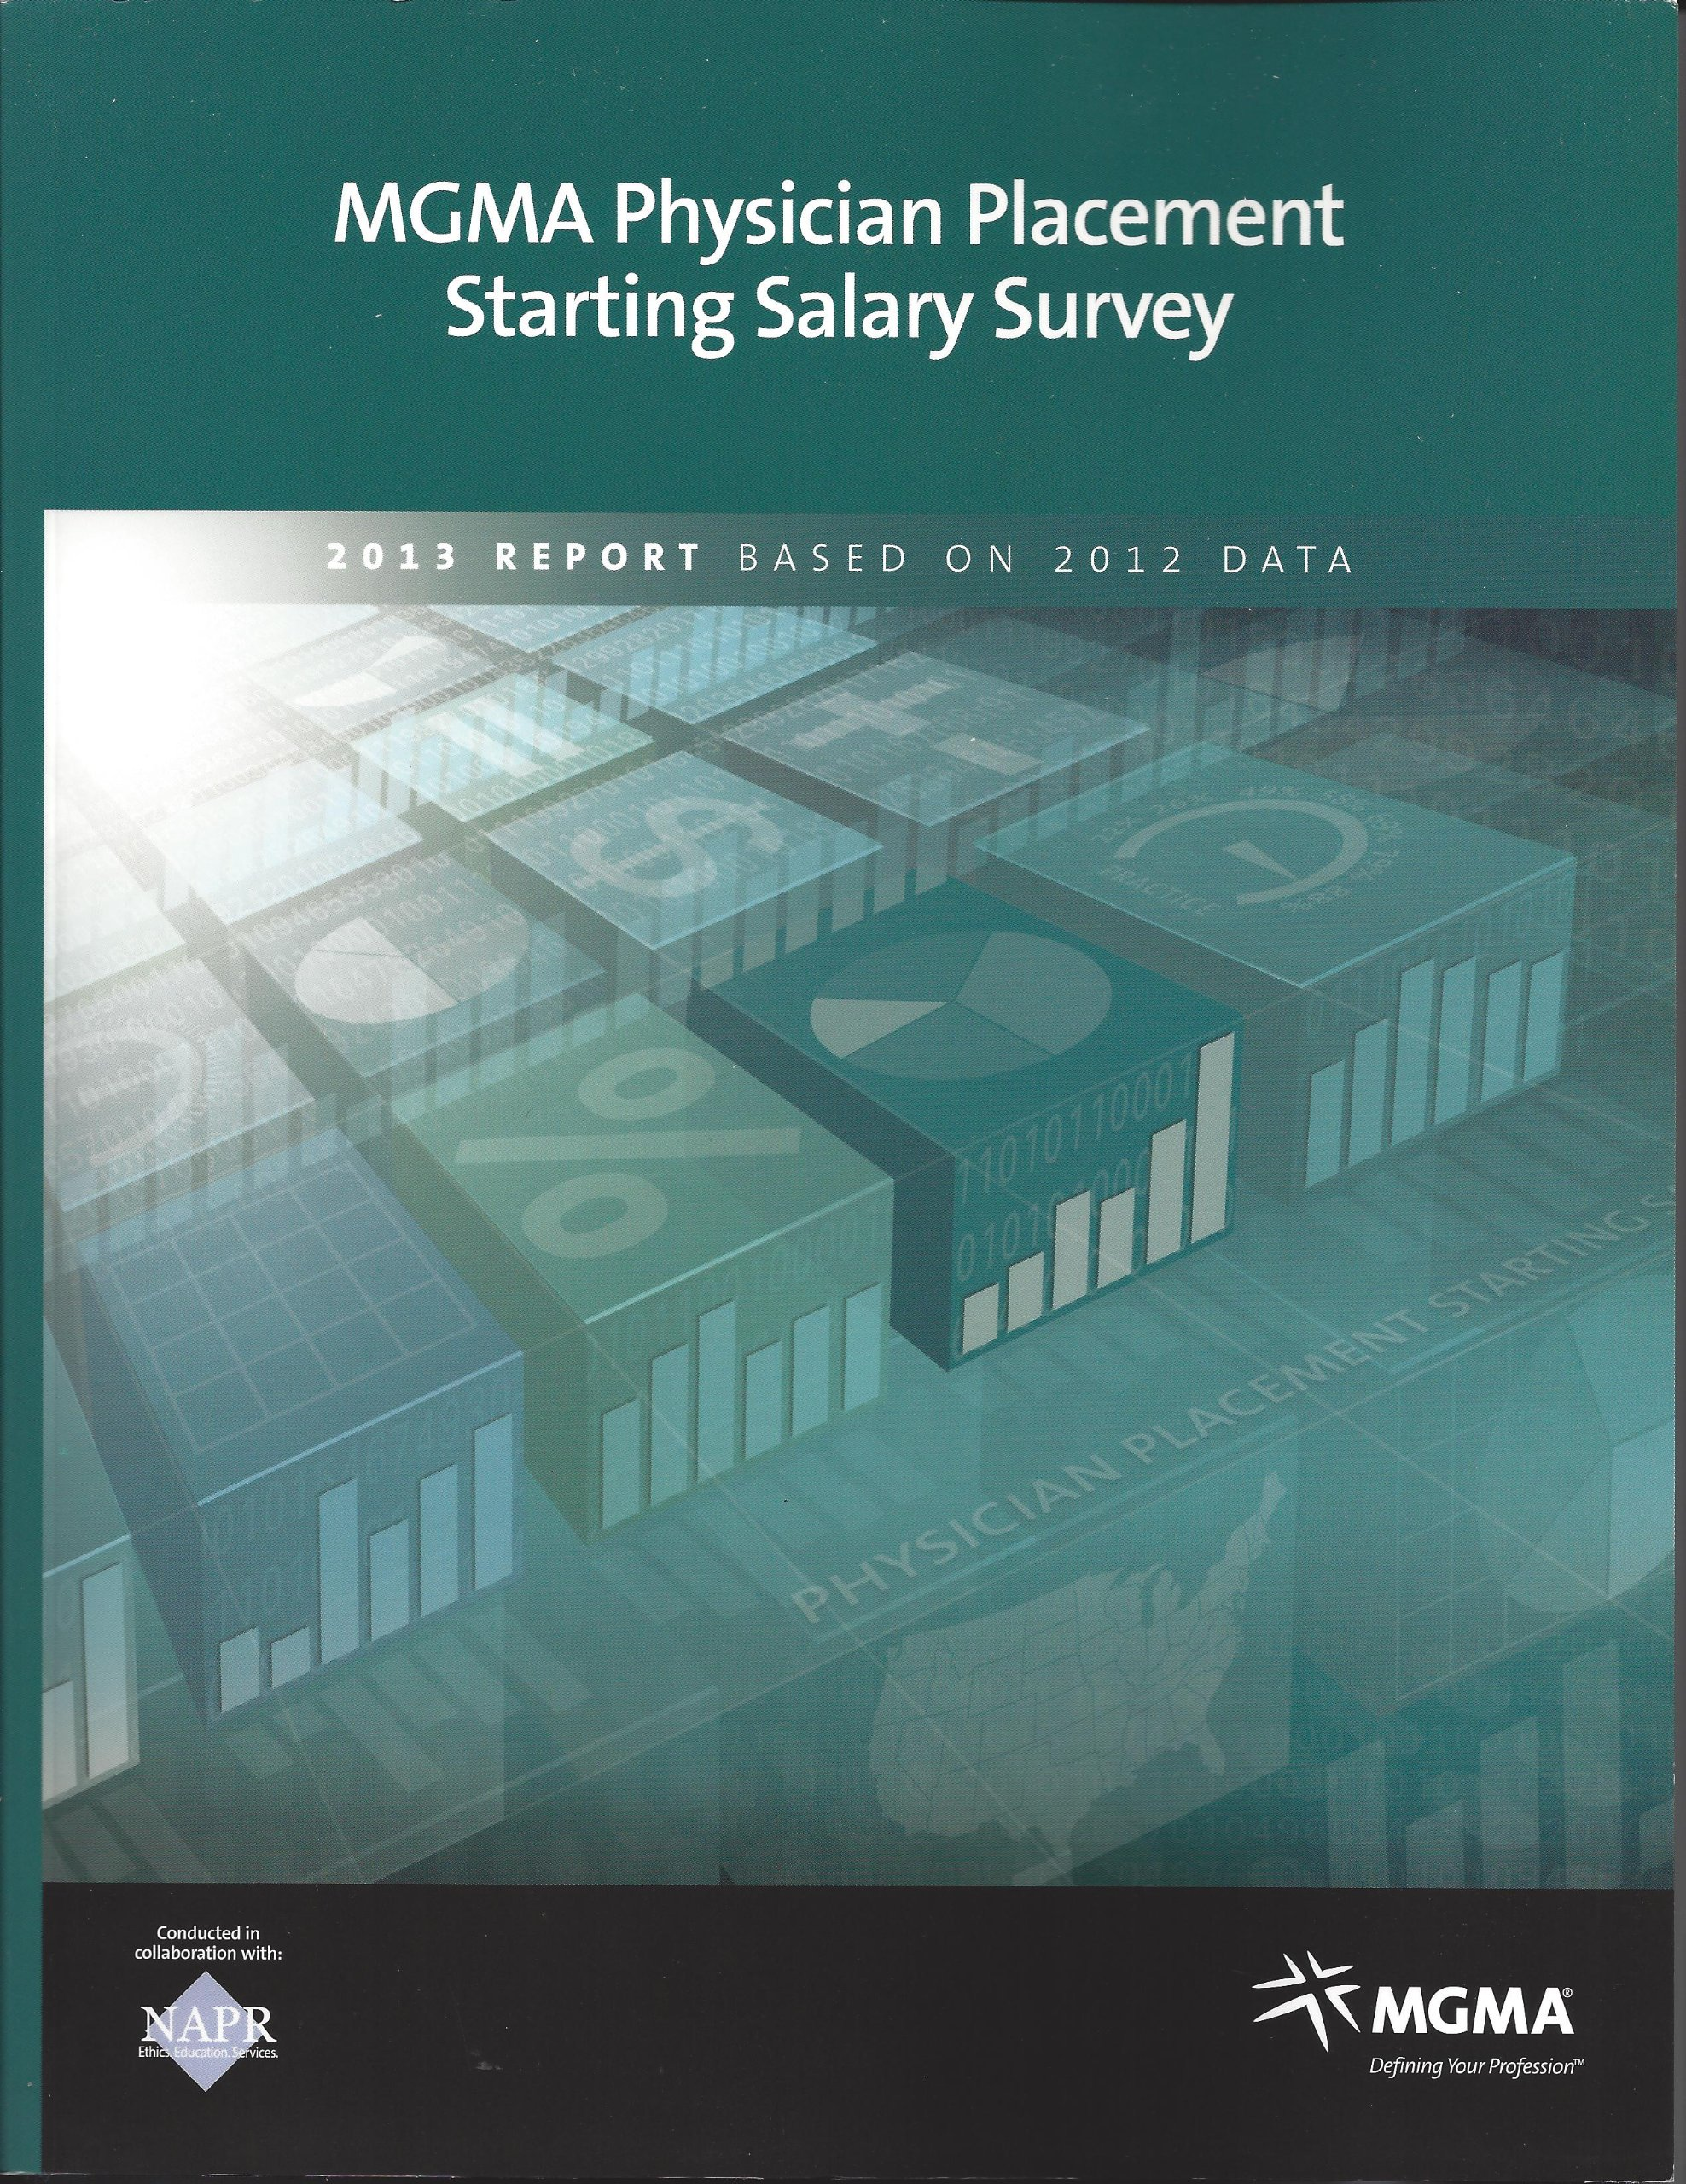 MGMA Physician Placement Starting Salary Survey: 2013 Report Based